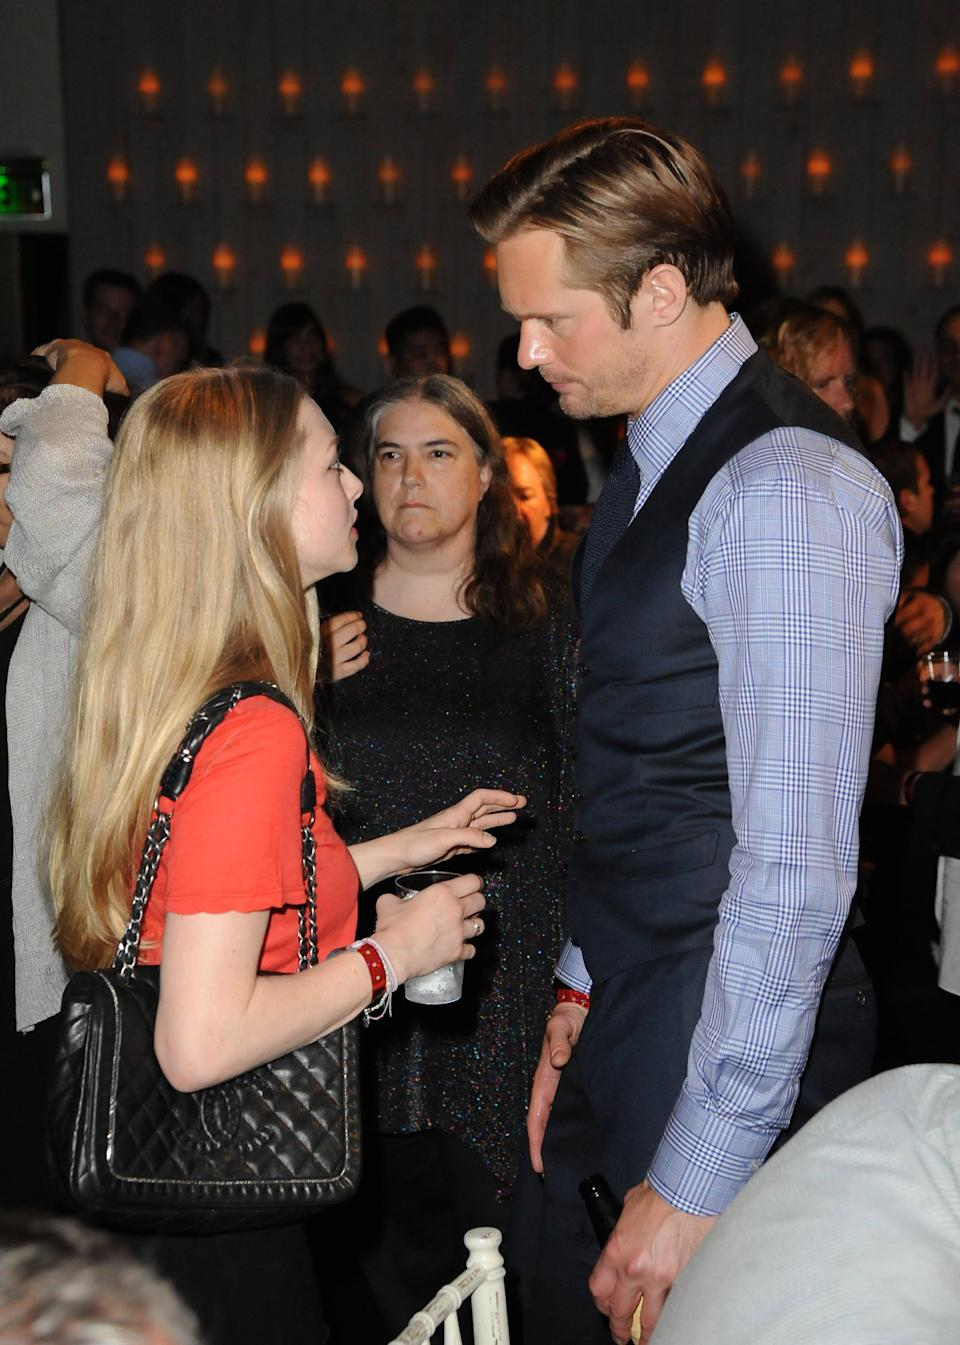 """<p>Back in 2008, Seyfried and Skarsgård briefly dated, but it wasn't until 2011 that Seyfried confirmed the past relationship.</p> <p>""""<a href=""""http://www.accessonline.com/articles/amanda-seyfried-dishes-on-dating-ryan-phillippe-dominic-cooper-alexander-skarsgard-98134"""" class=""""link rapid-noclick-resp"""" rel=""""nofollow noopener"""" target=""""_blank"""" data-ylk=""""slk:We dated"""">We dated</a>. He's super funny, but I was too involved with Dom [<strong>Mamma Mia </strong>costar Dominic Cooper],"""" she told <strong>Elle</strong>, as reported by <strong>Access Hollywood</strong>. <br></p>"""